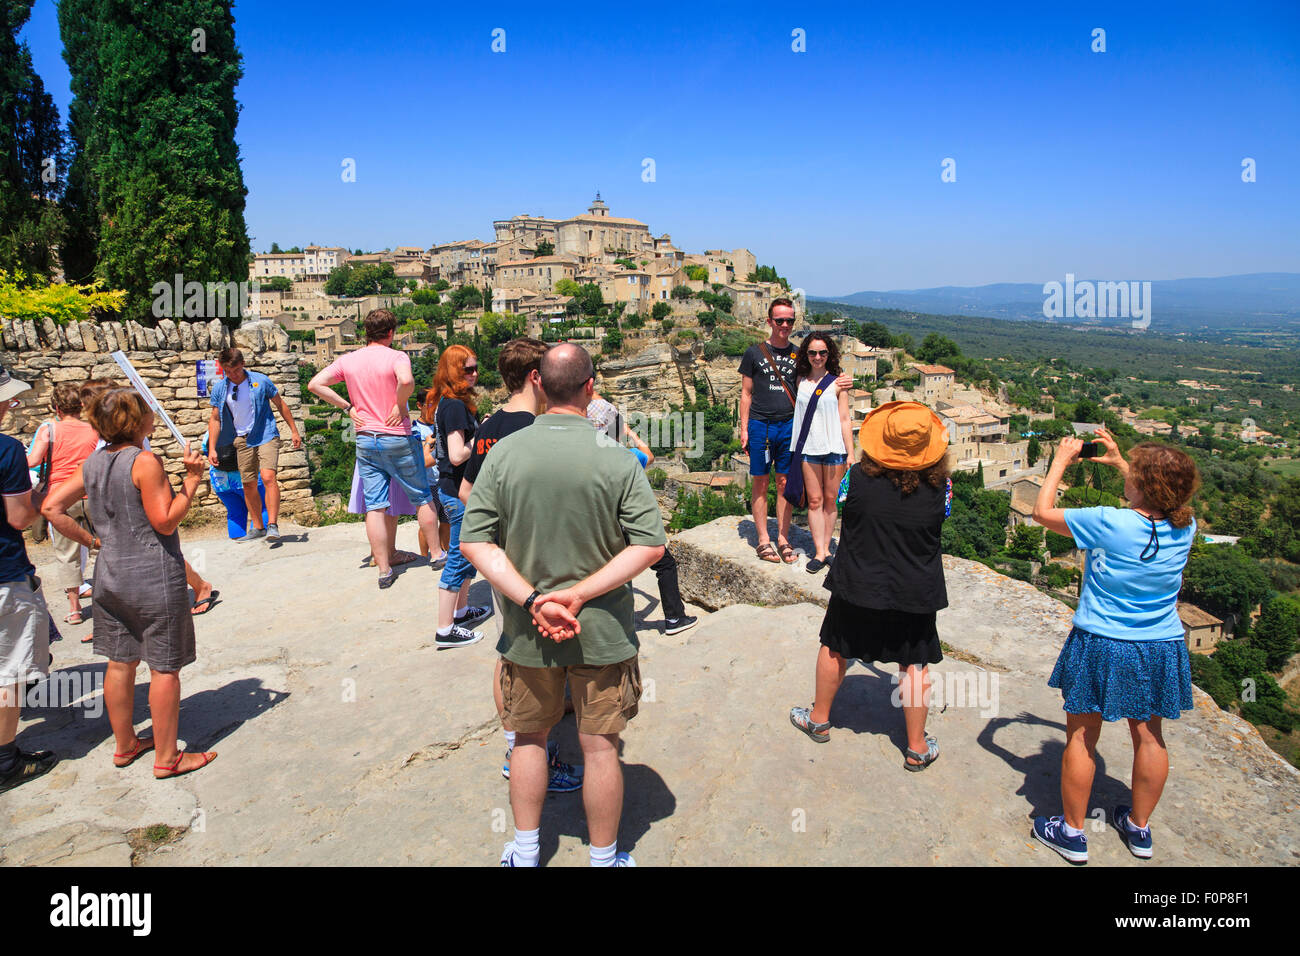 Tourists at the viewpoint of the hilltop village of Gourdes in Provence France - Stock Image